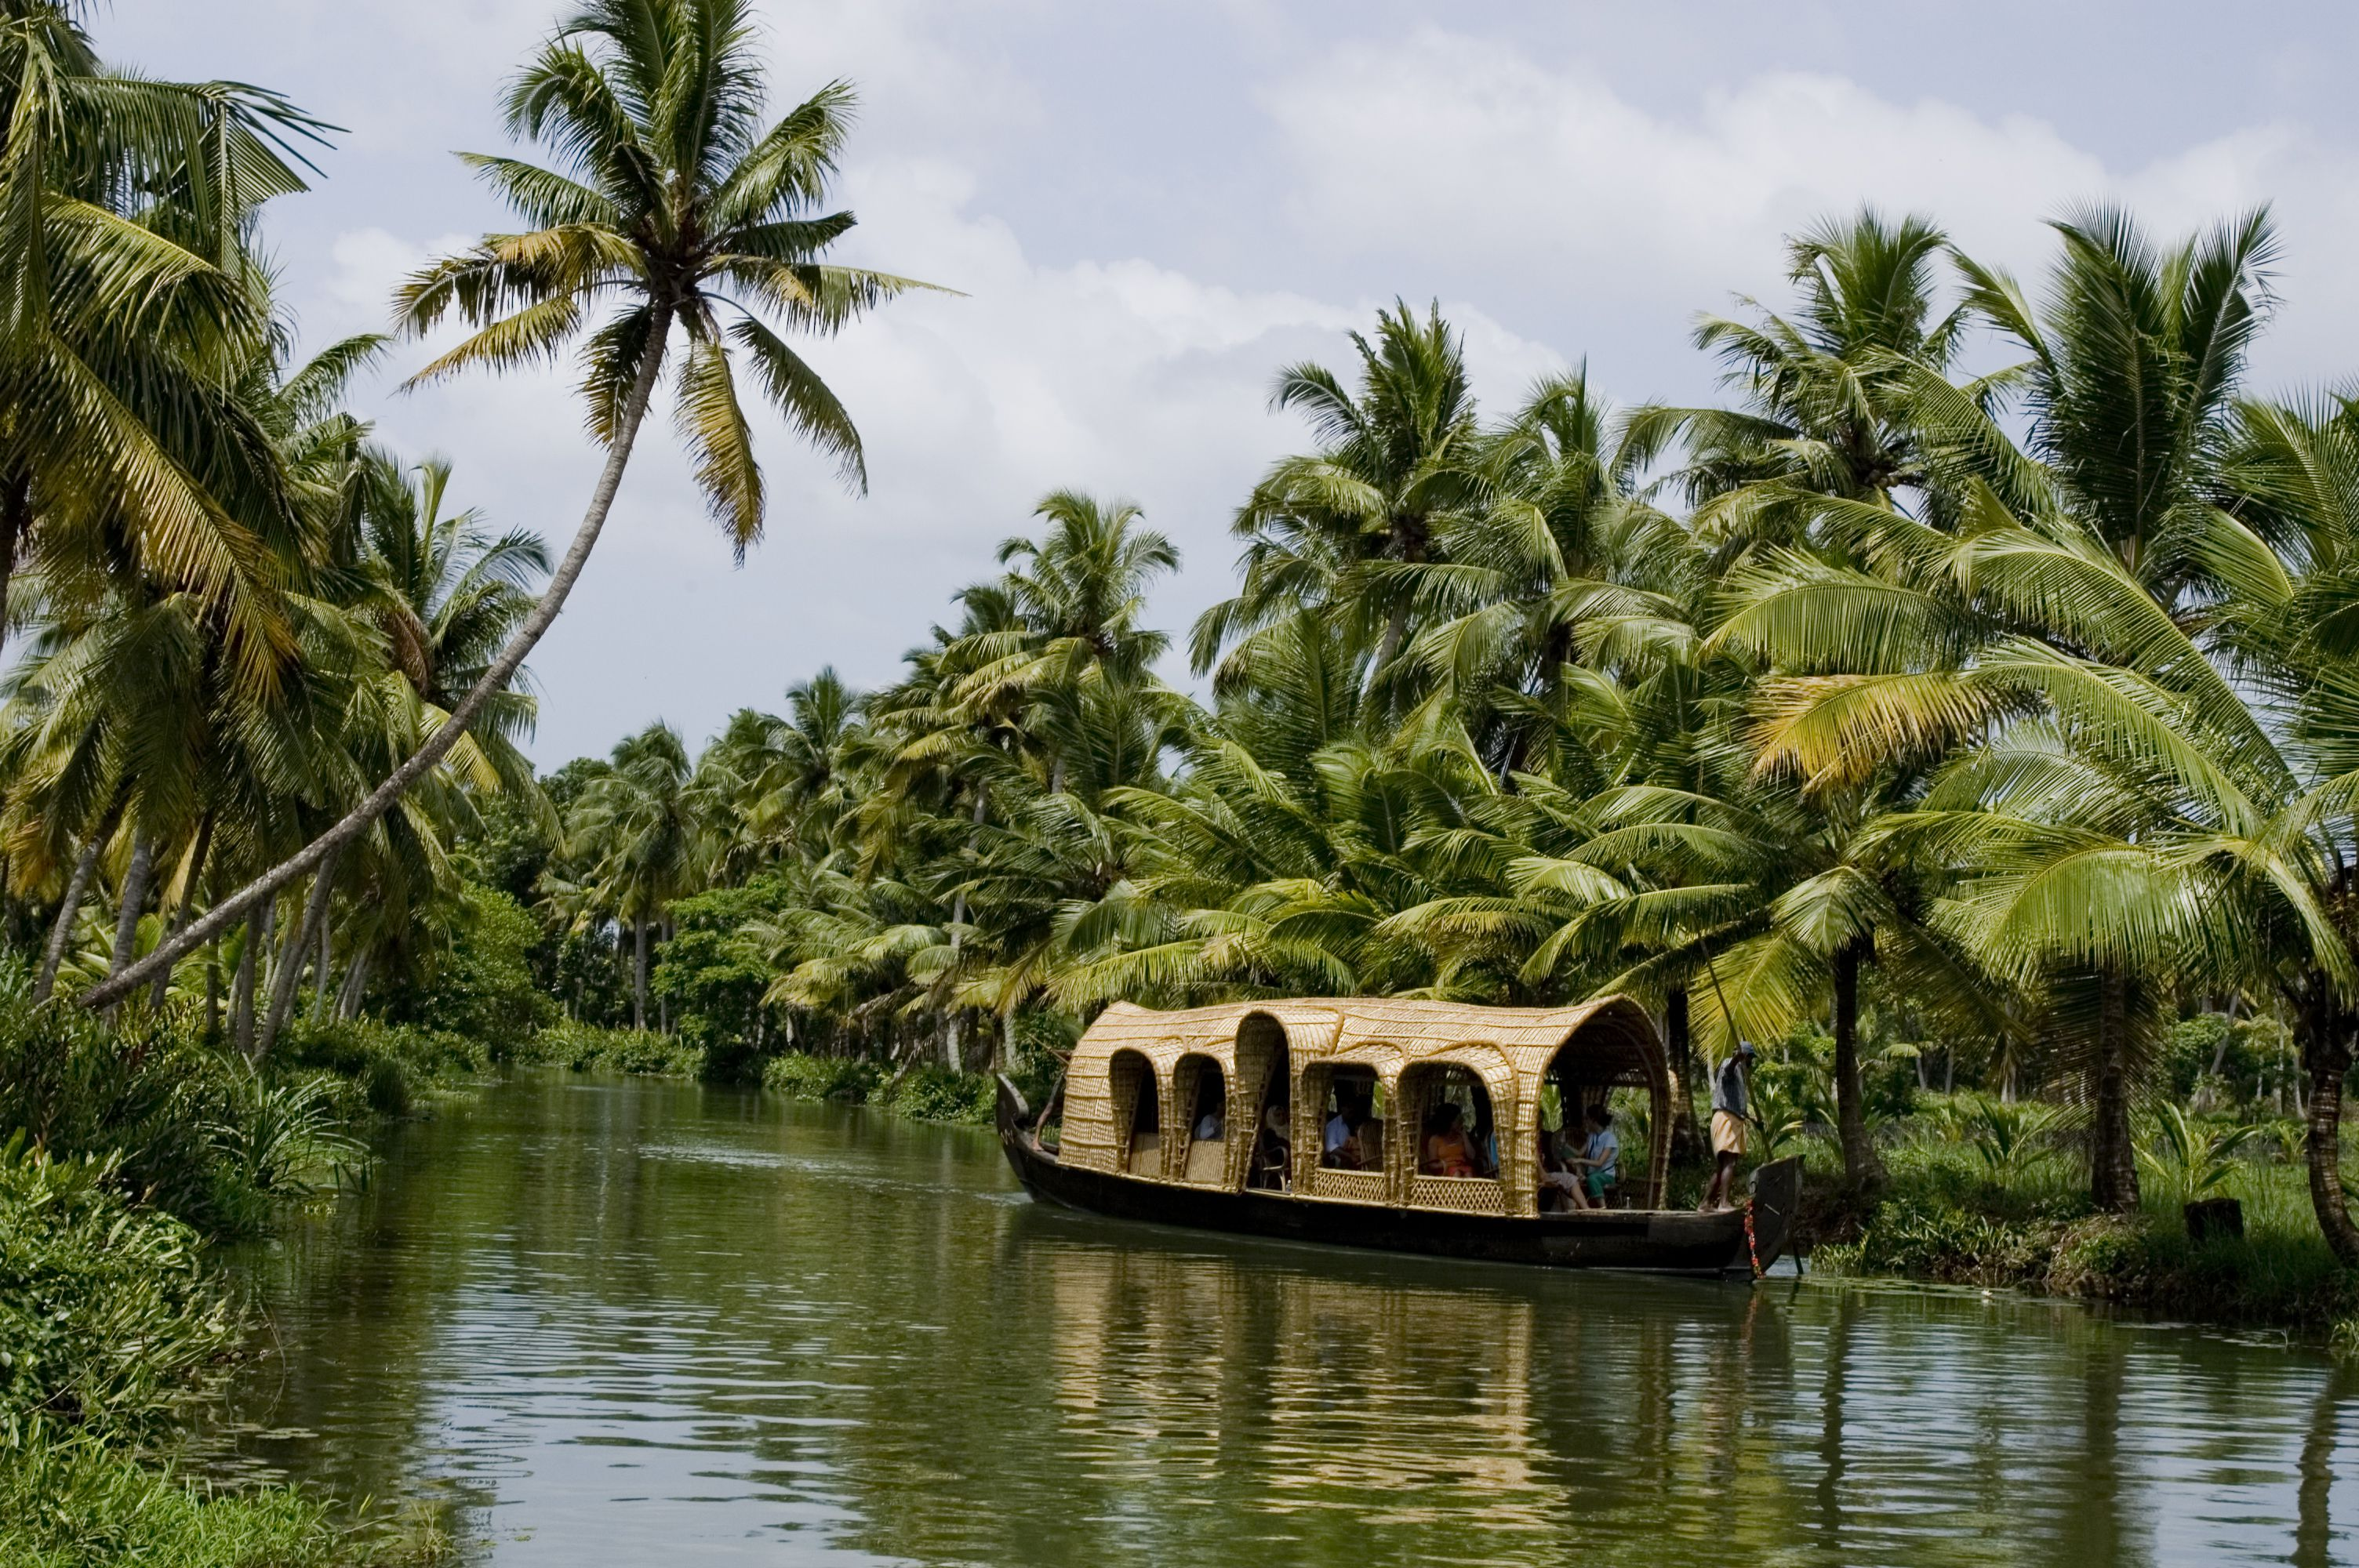 Essential Guide to Hiring a Houseboat in Kerala